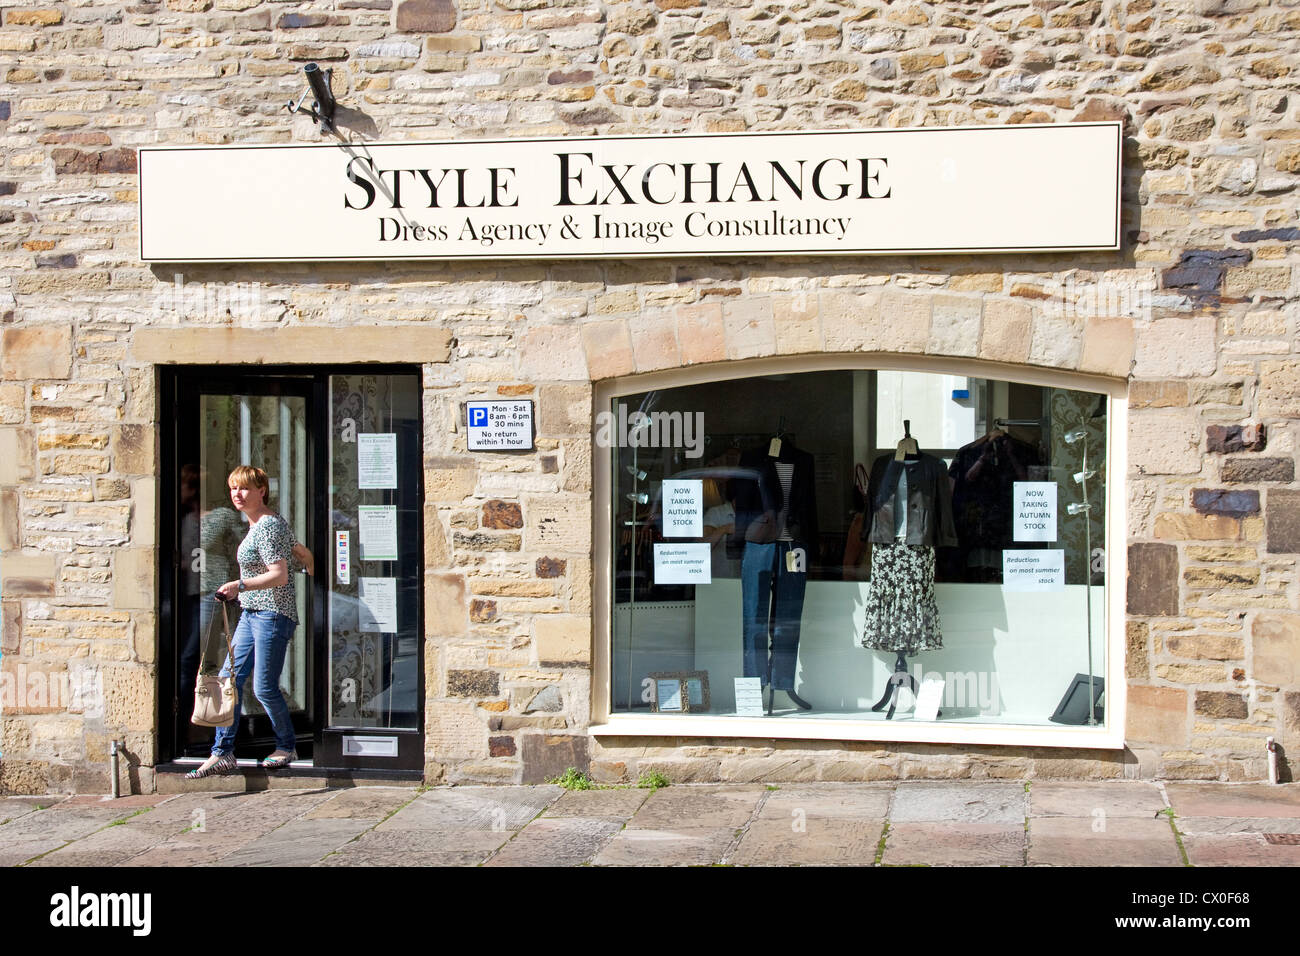 The dress agency - Dress Agency Pre Owned Clothes Shop And Image Consultancy Skipton North Yorkshire England Uk